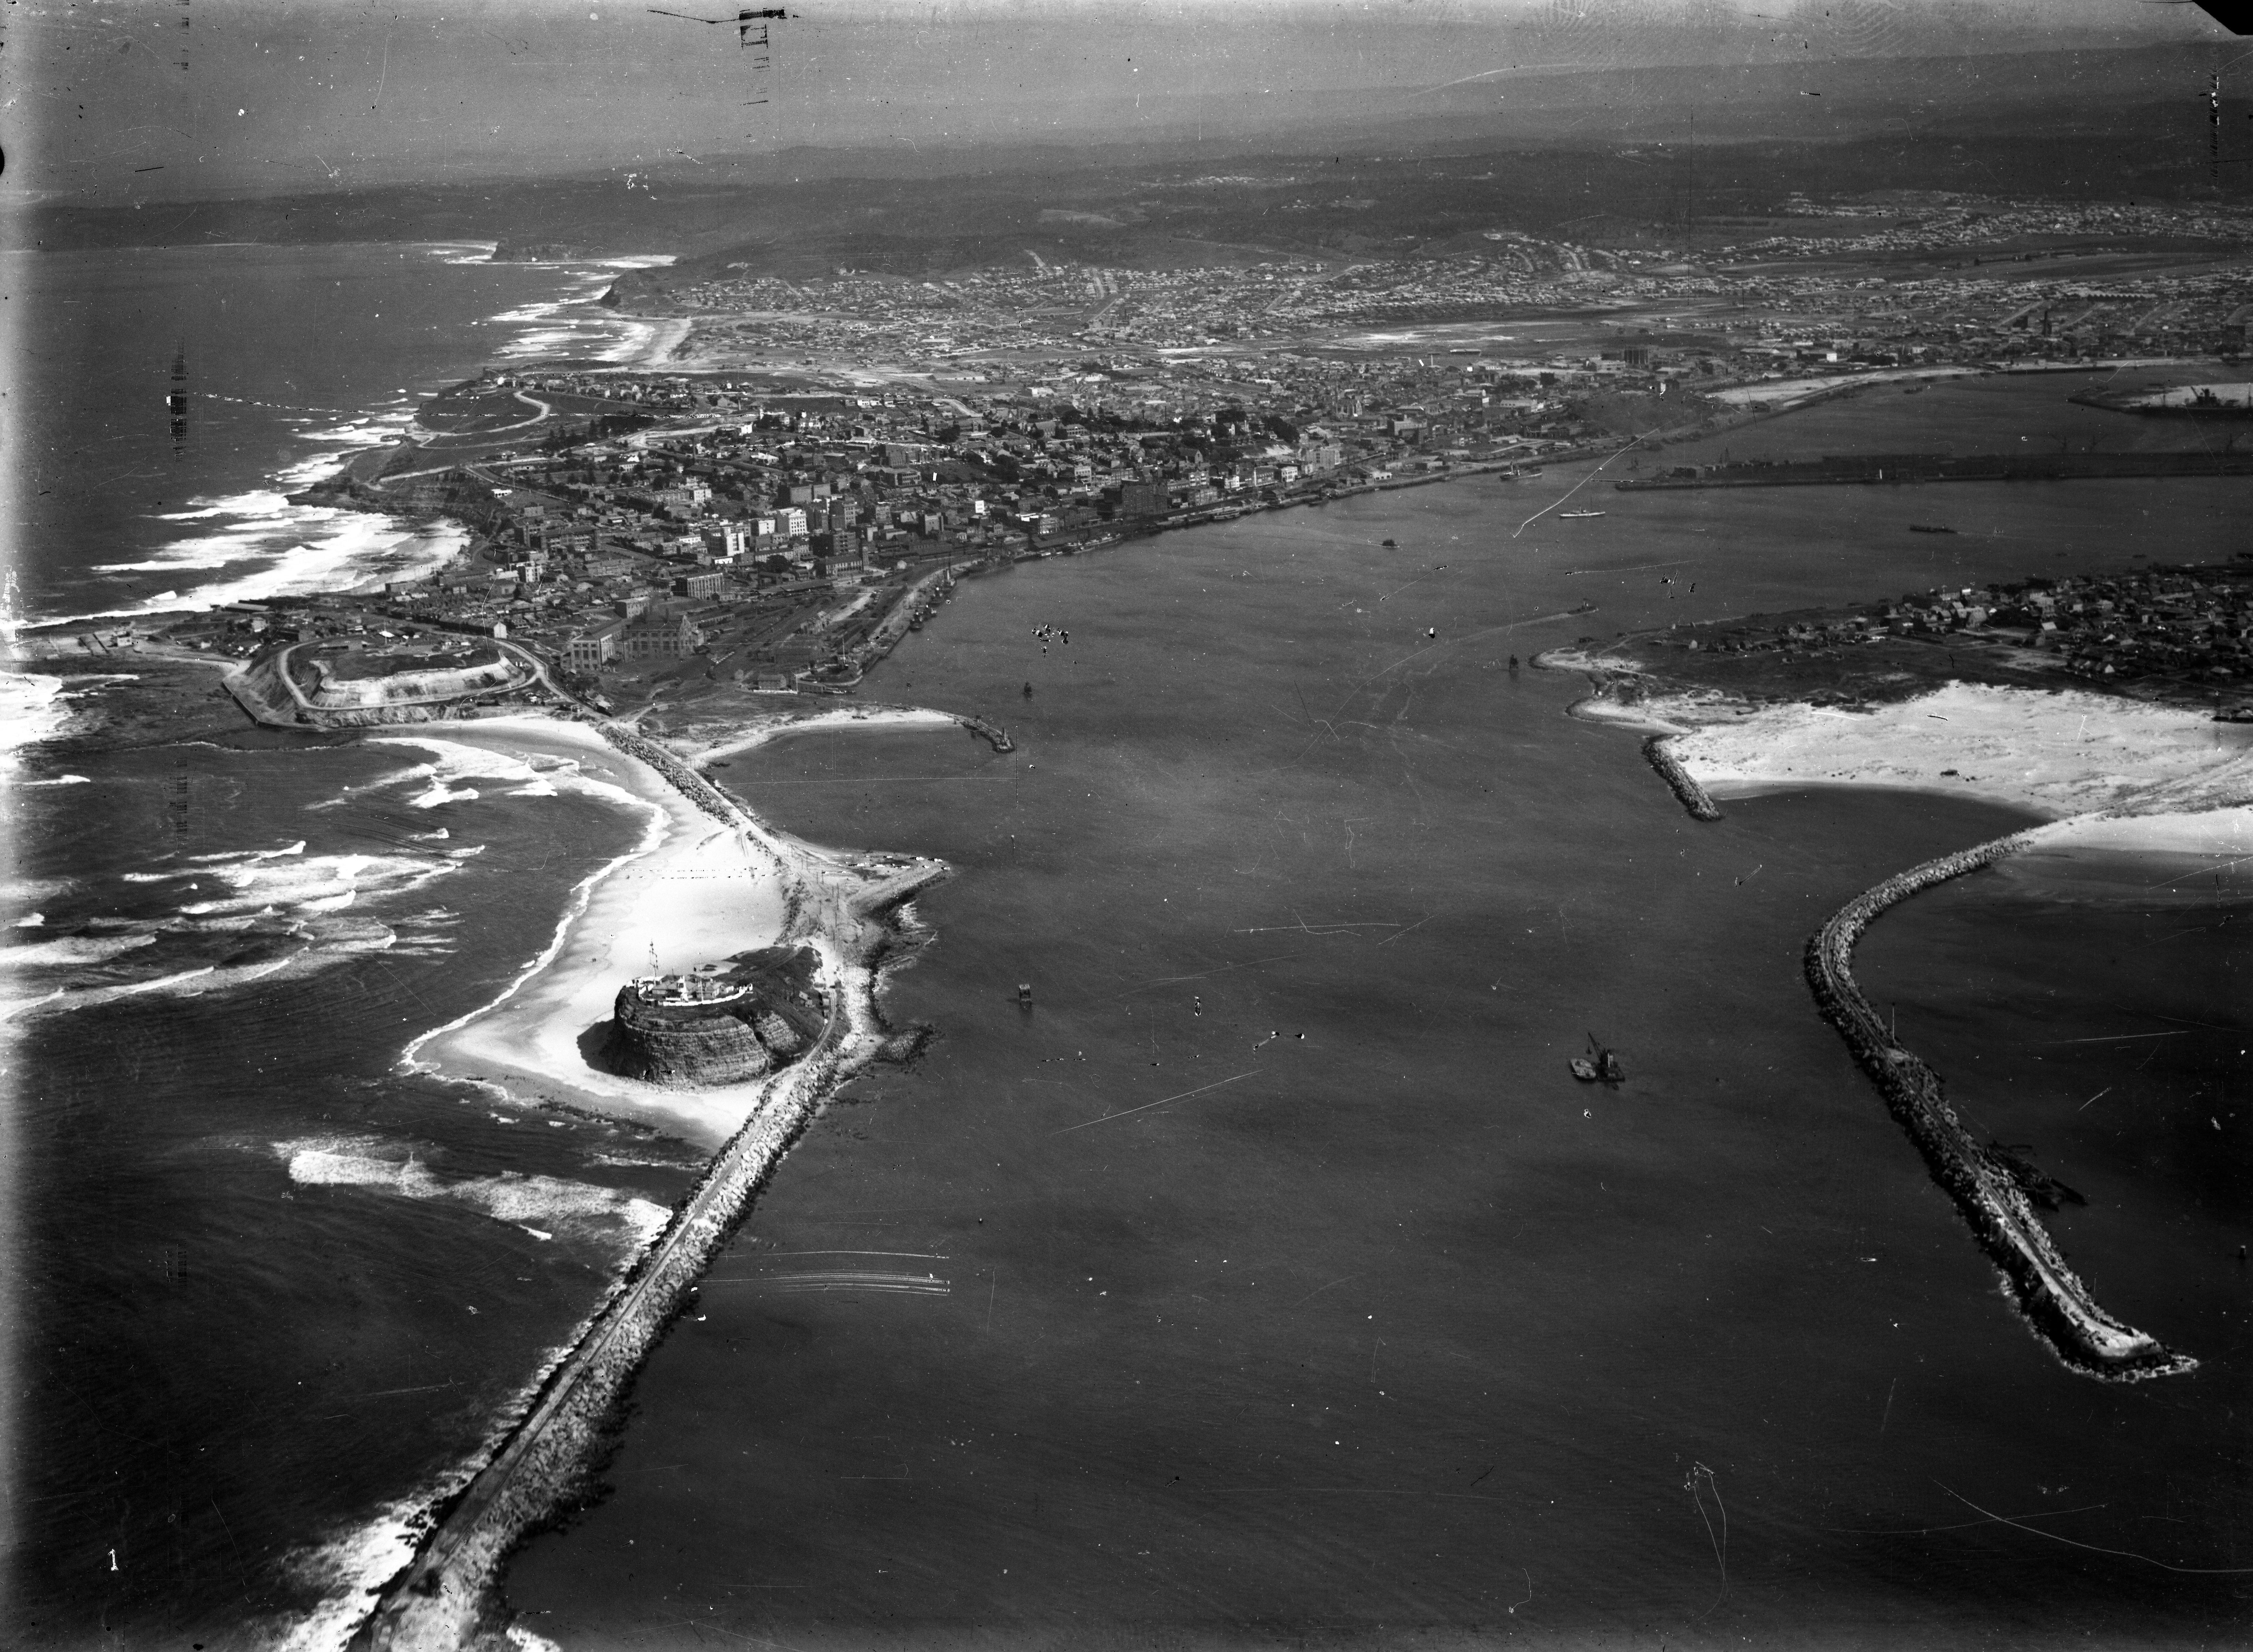 Newcastle Entrance, Knobbys head, Signal Hill, Fort Scratchley, Merewether, Port Hunter, Wave Trap, Pirate Point, Stockton, The Dyke. (Photograph by Milton Kent Airplane Photographs, Sydney. Southern No. 61.6.-.1.1934.jpg)